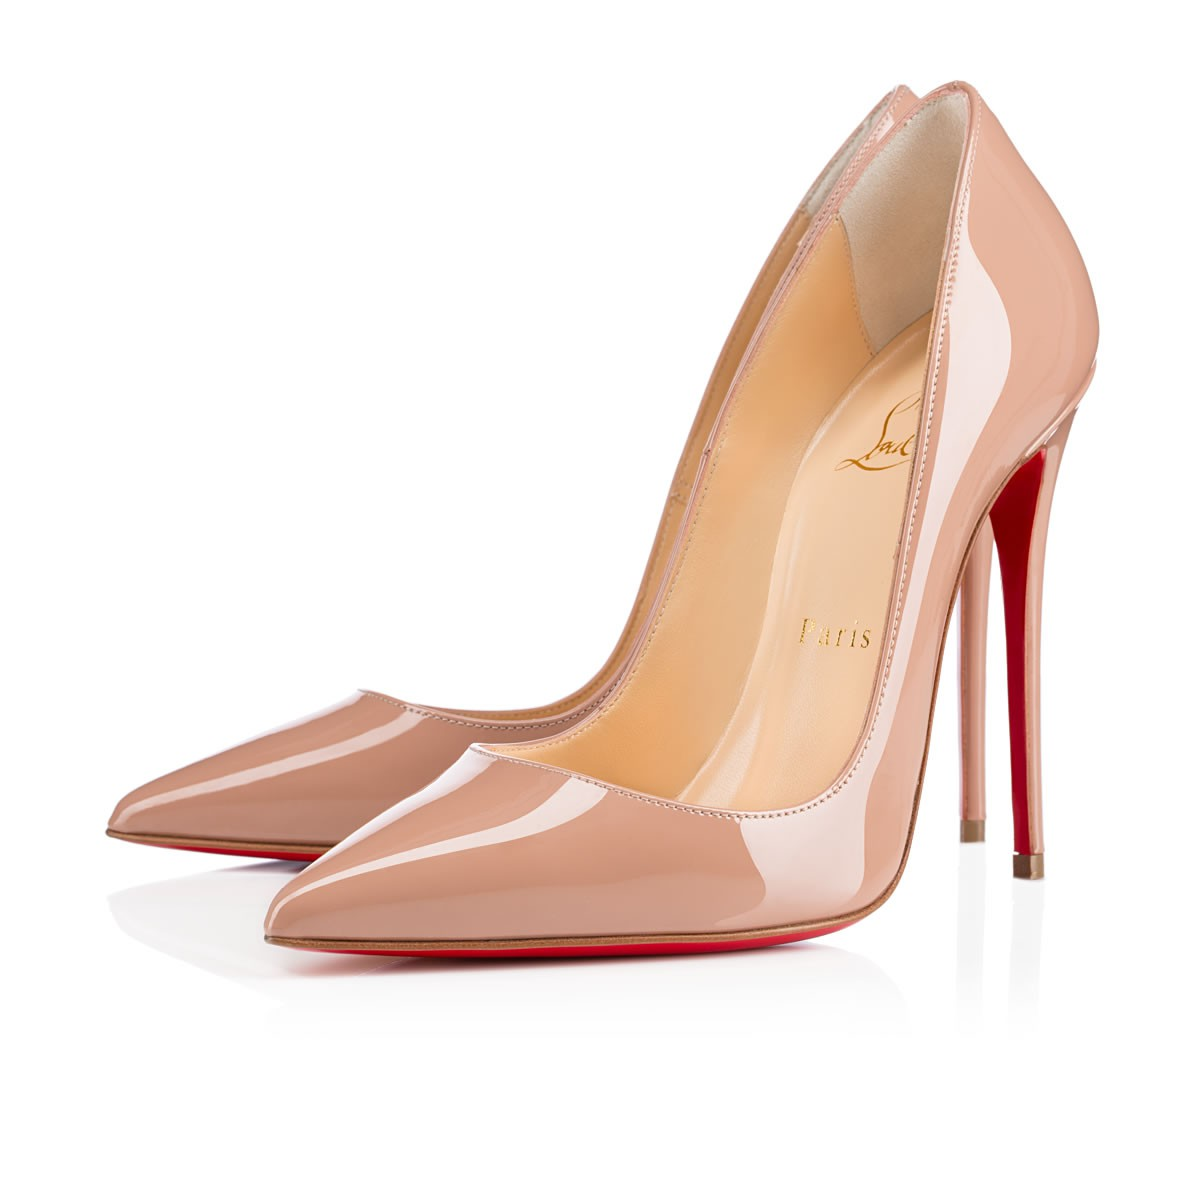 812defb16ab SO KATE PATENT 120 Nude Patent calfskin - Women Shoes - Christian Louboutin